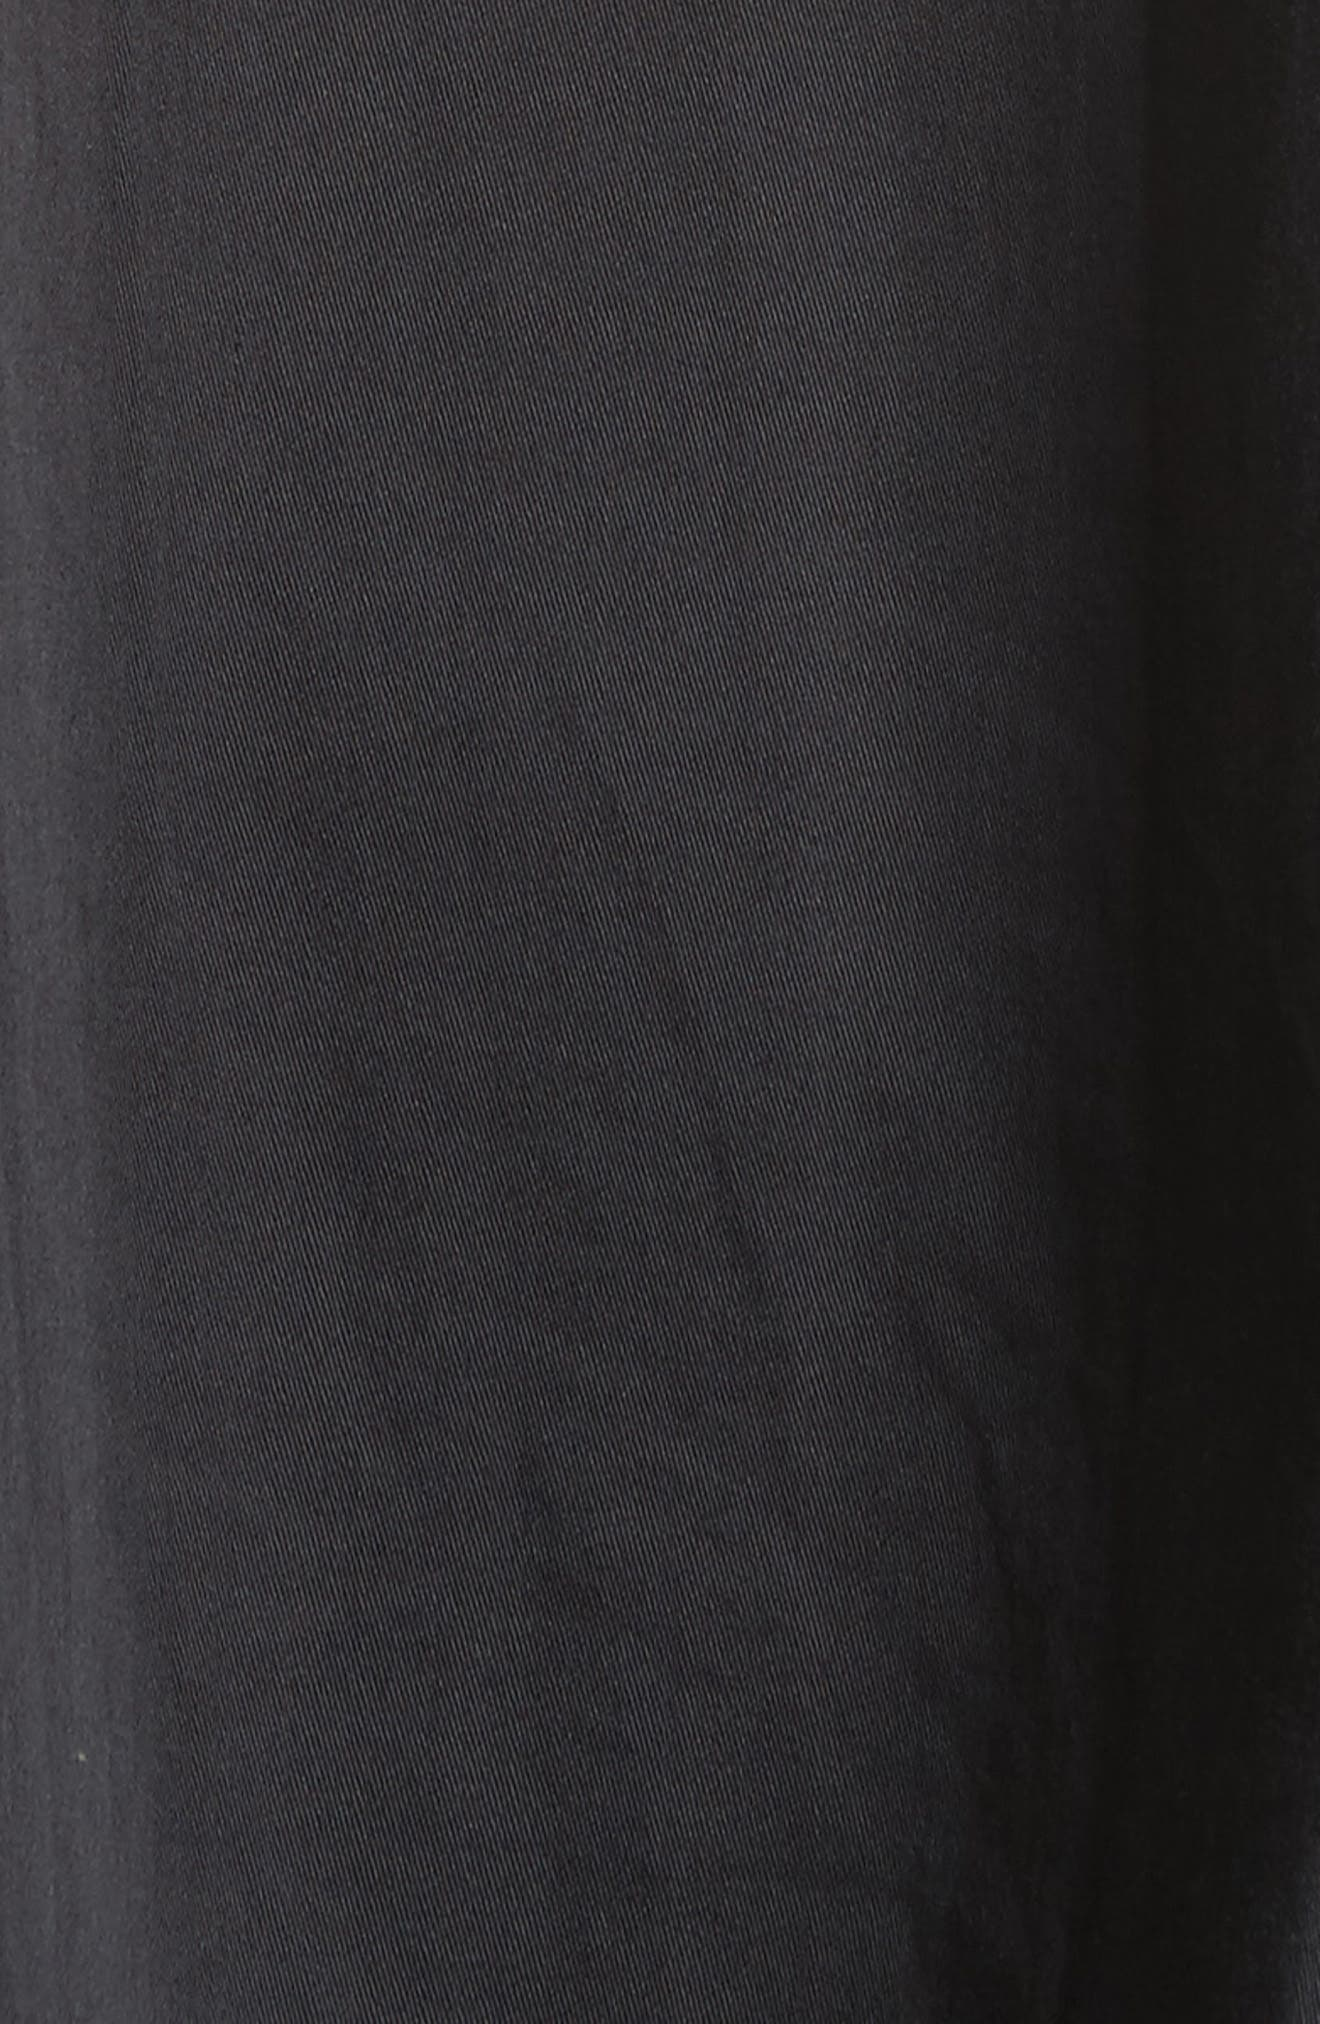 Layered Oversize Tee,                             Alternate thumbnail 6, color,                             Black